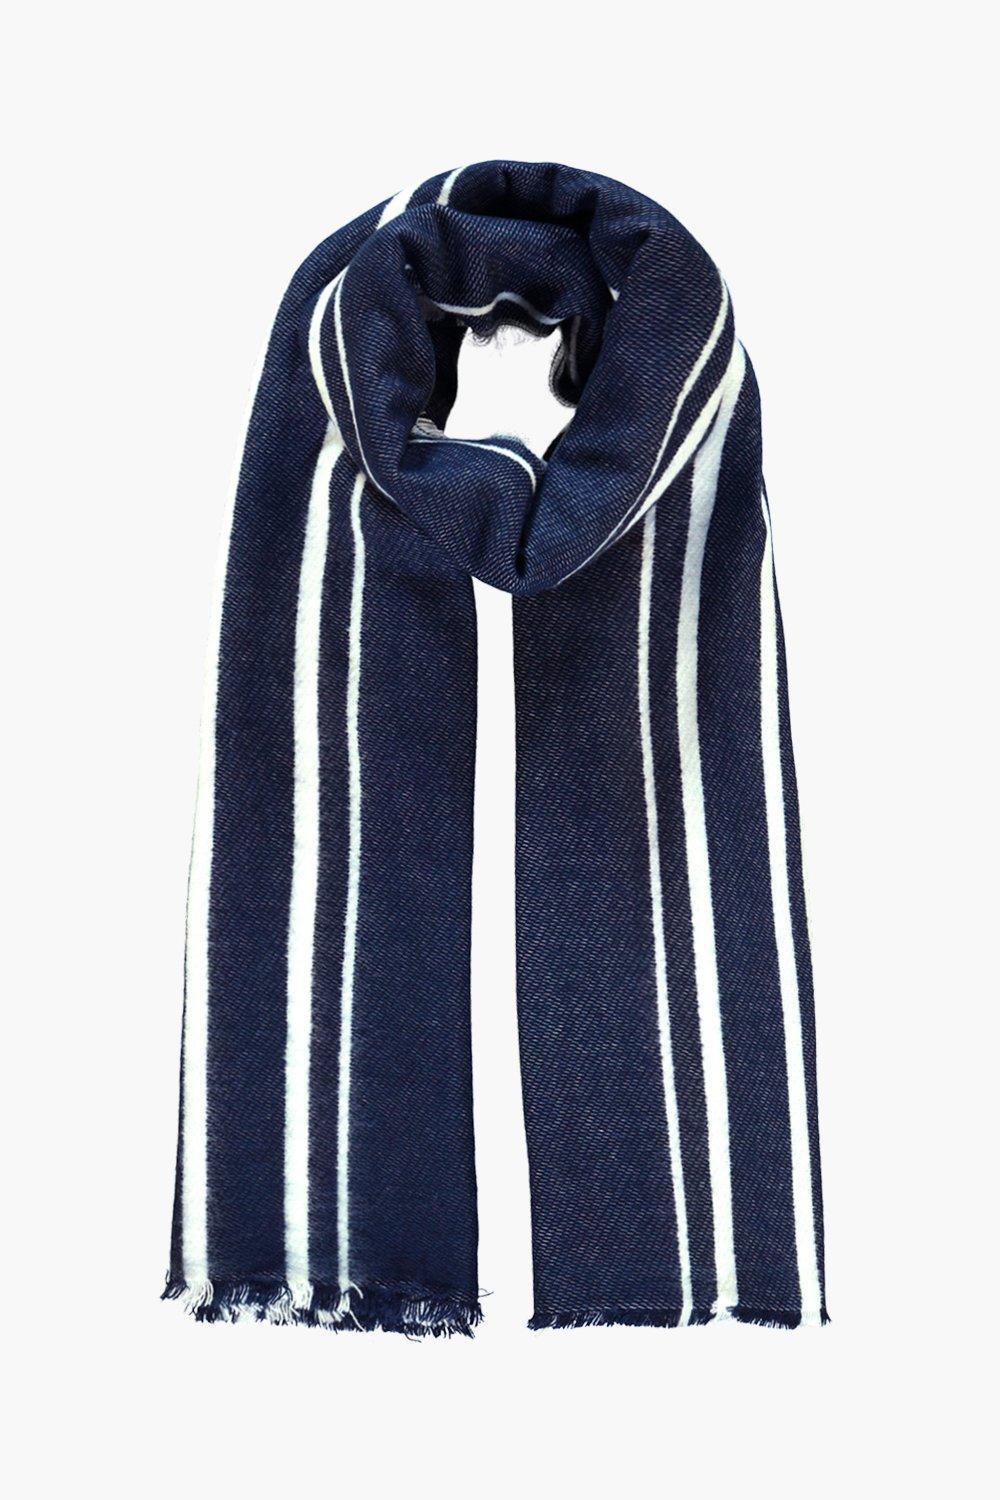 Varied Stripe Wool Oversized Scarf Navy - secondary colour: white; predominant colour: navy; occasions: casual, creative work; type of pattern: standard; style: regular; size: large; material: knits; pattern: vertical stripes; season: a/w 2016; wardrobe: highlight